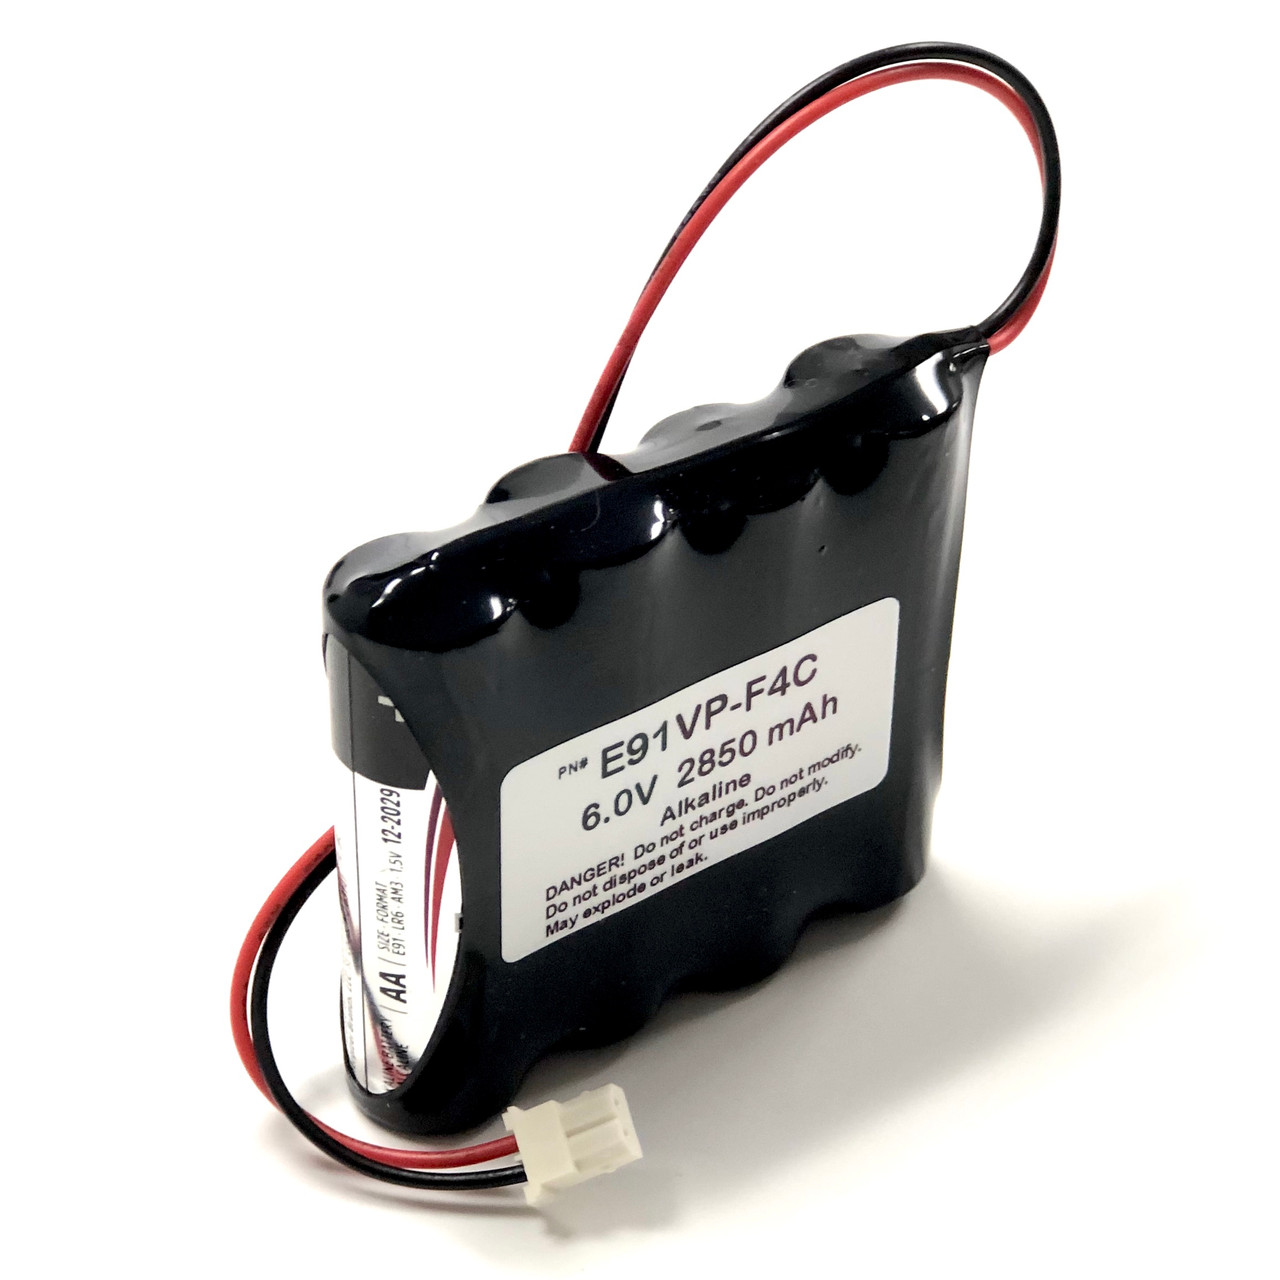 Aftermarket Replacement for ES8 Hand Sanitizer Dispenser Replacement Battery